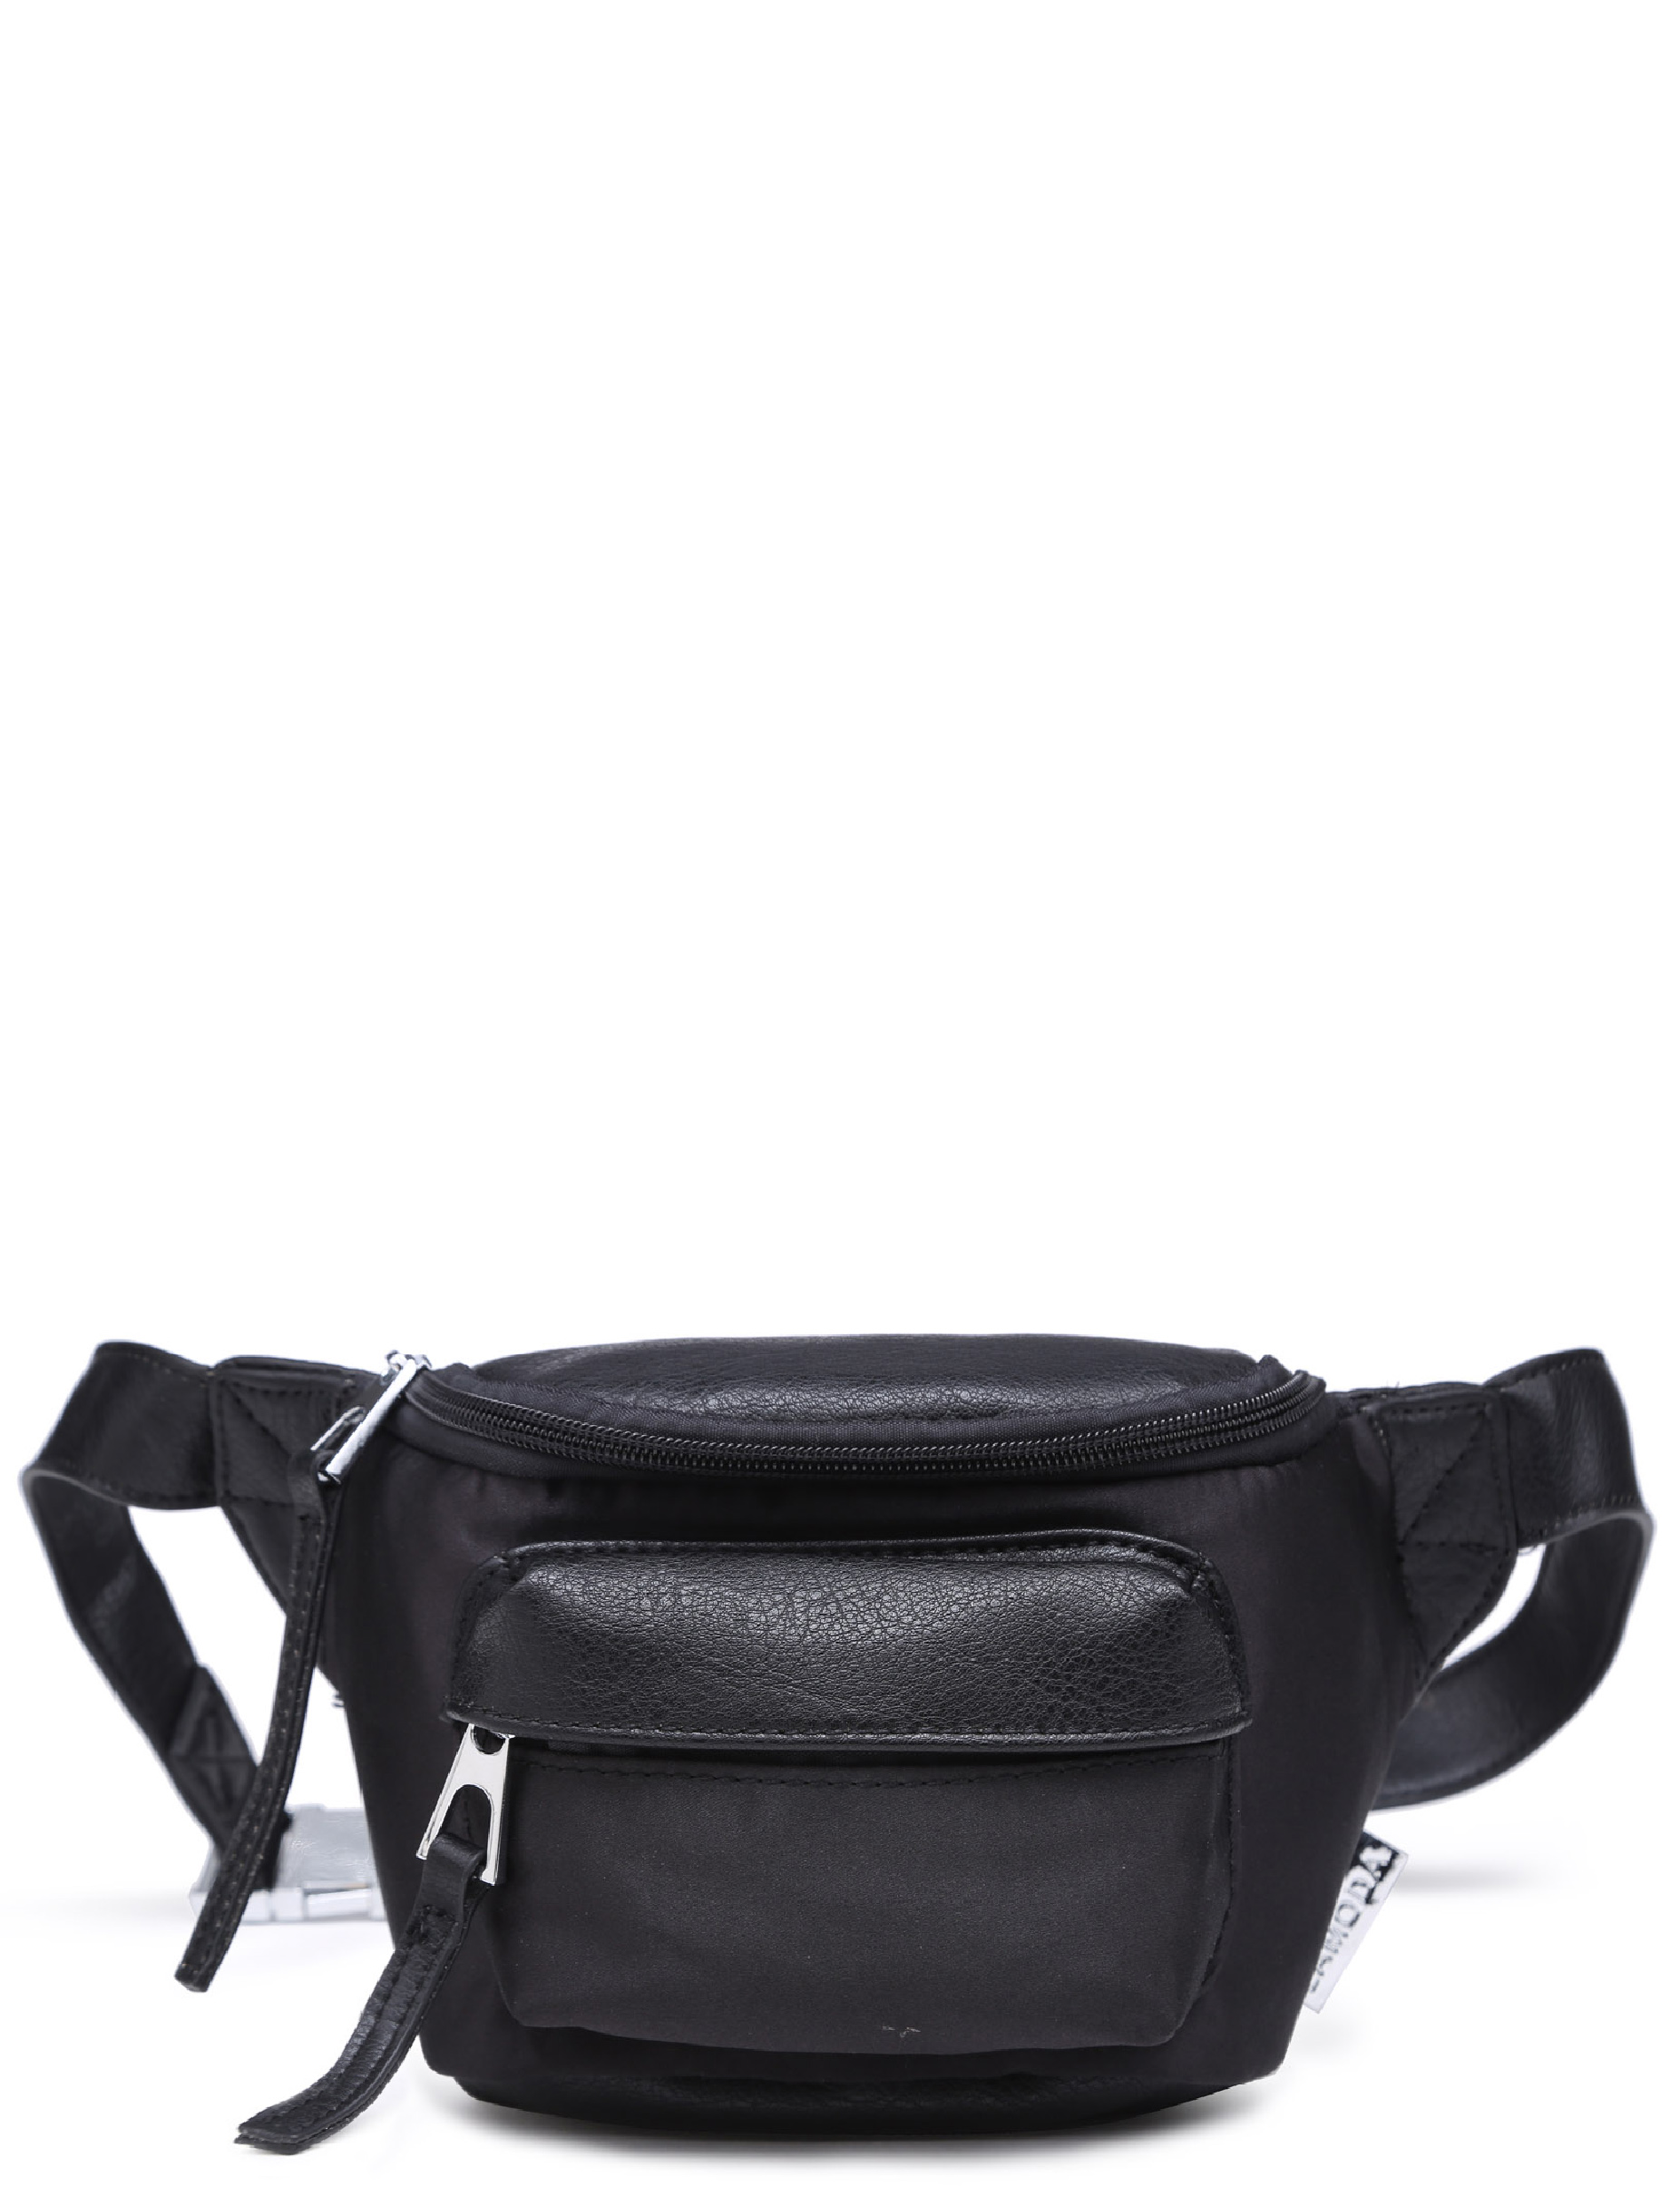 Image of Ambitonz Front Pocket Bumbag In Black PU